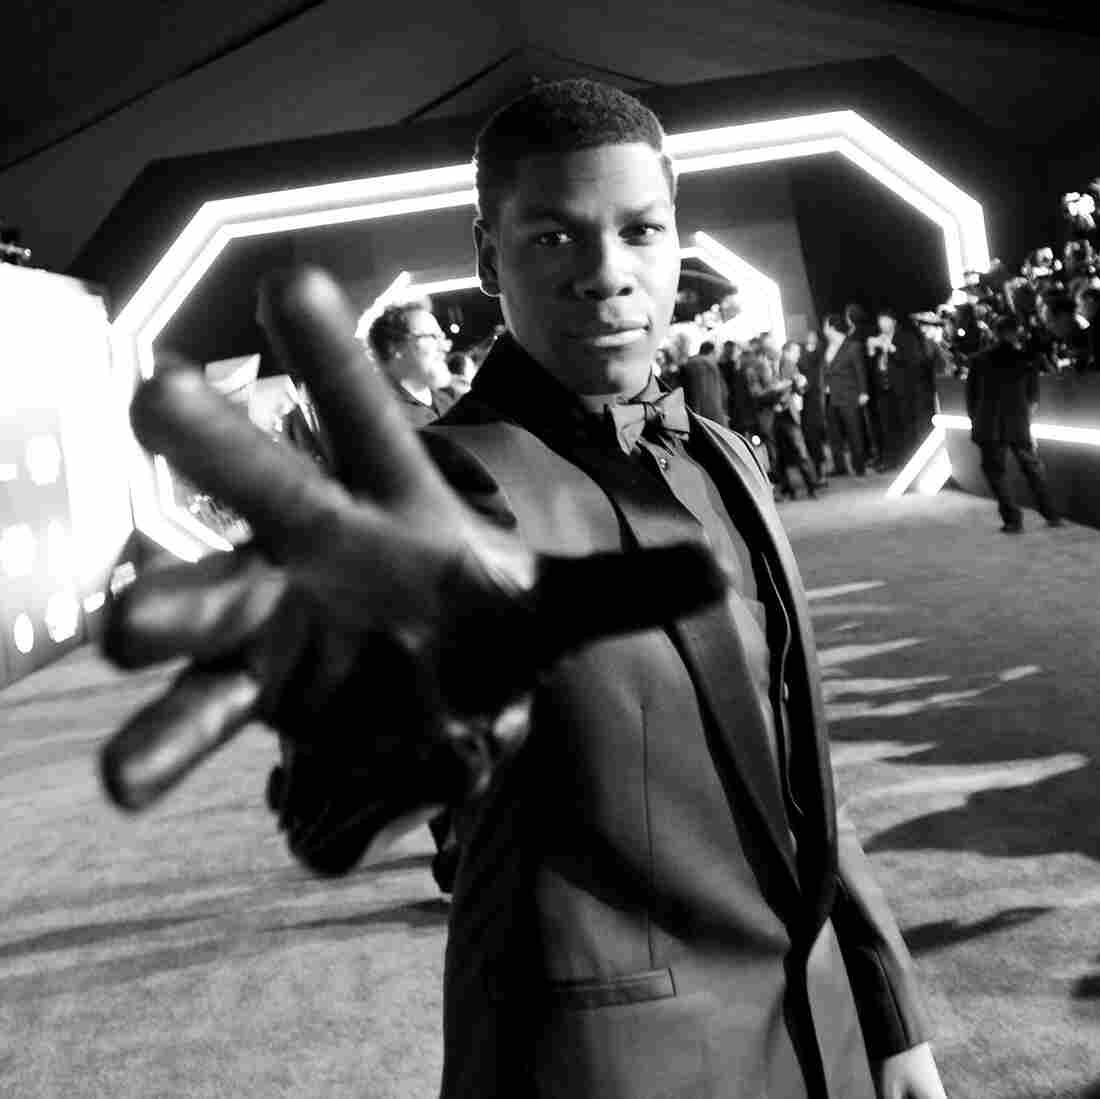 Actor John Boyega attends the world premiere of Star Wars: The Force Awakens in Hollywood. Boyega, the son of Nigerian immigrants, grew up in London.